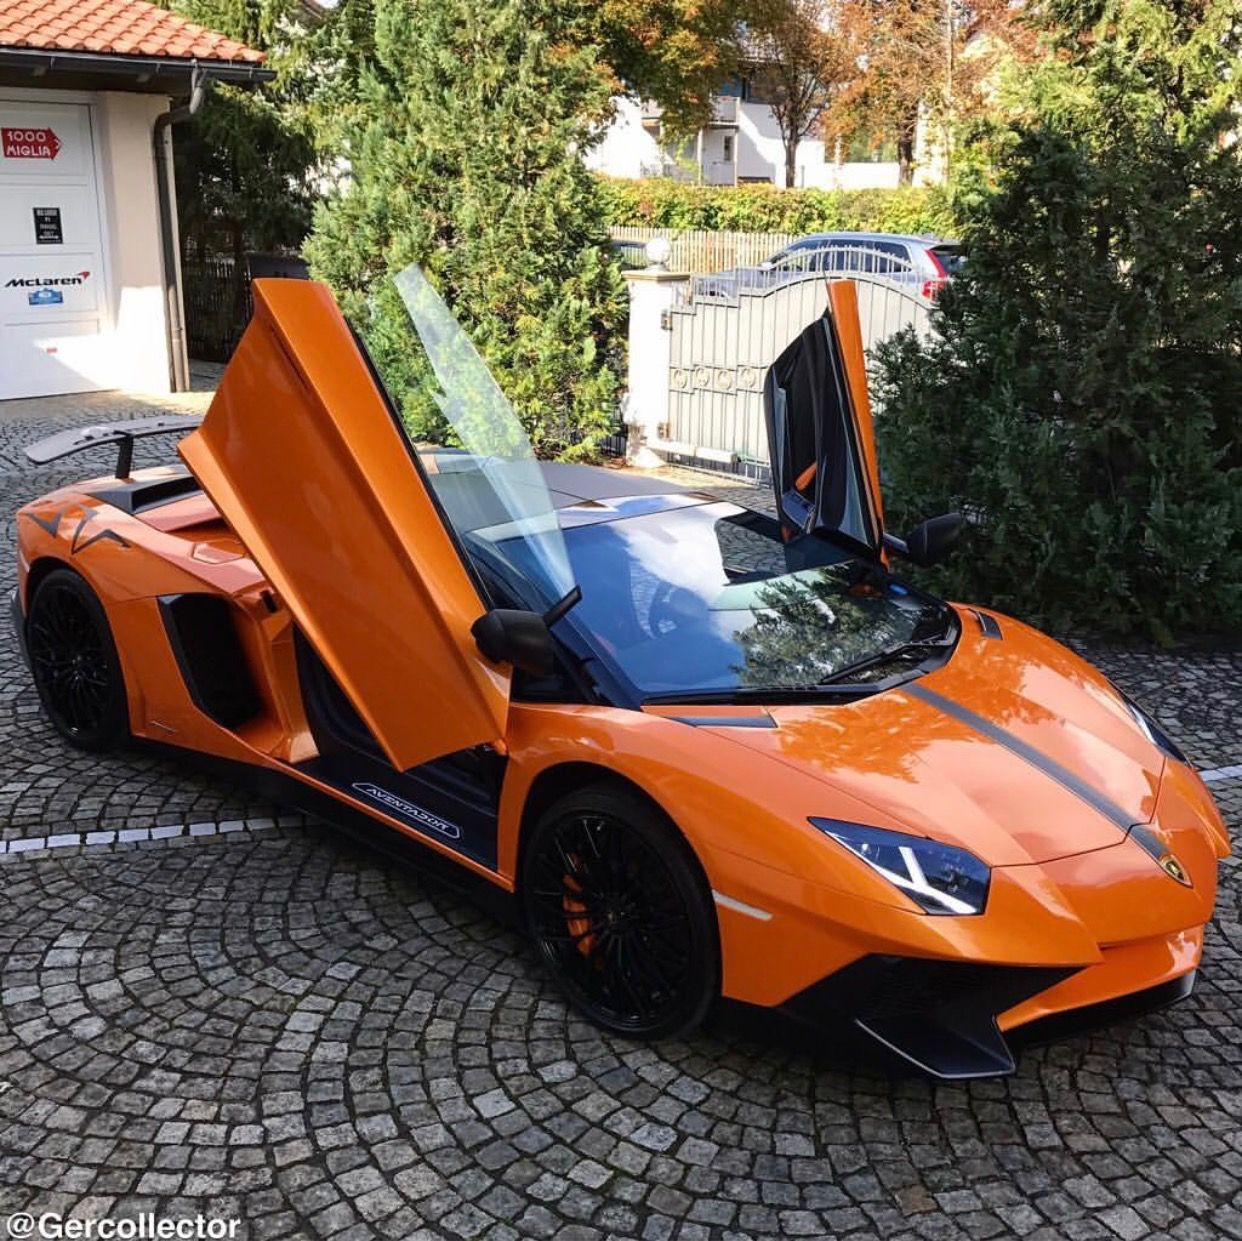 Charming Lamborghini Aventador Super Veloce Roadster Painted In Arancio  Atlas W/ A Matte Black Center